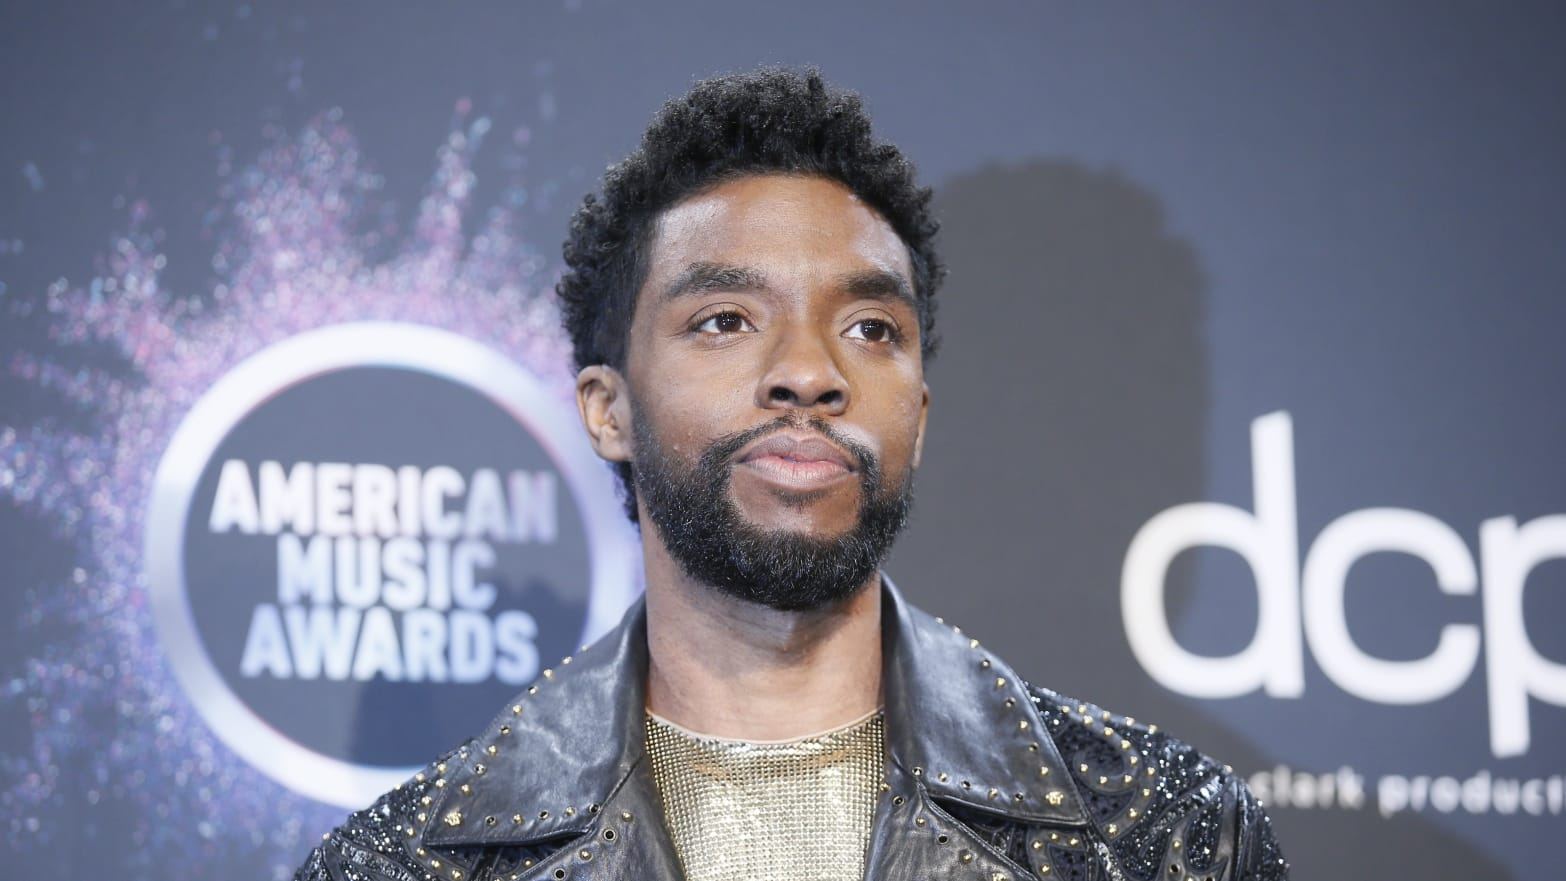 Black Panther Star Chadwick Boseman Dies At 43 After Quietly Battling Colon Cancer For Years